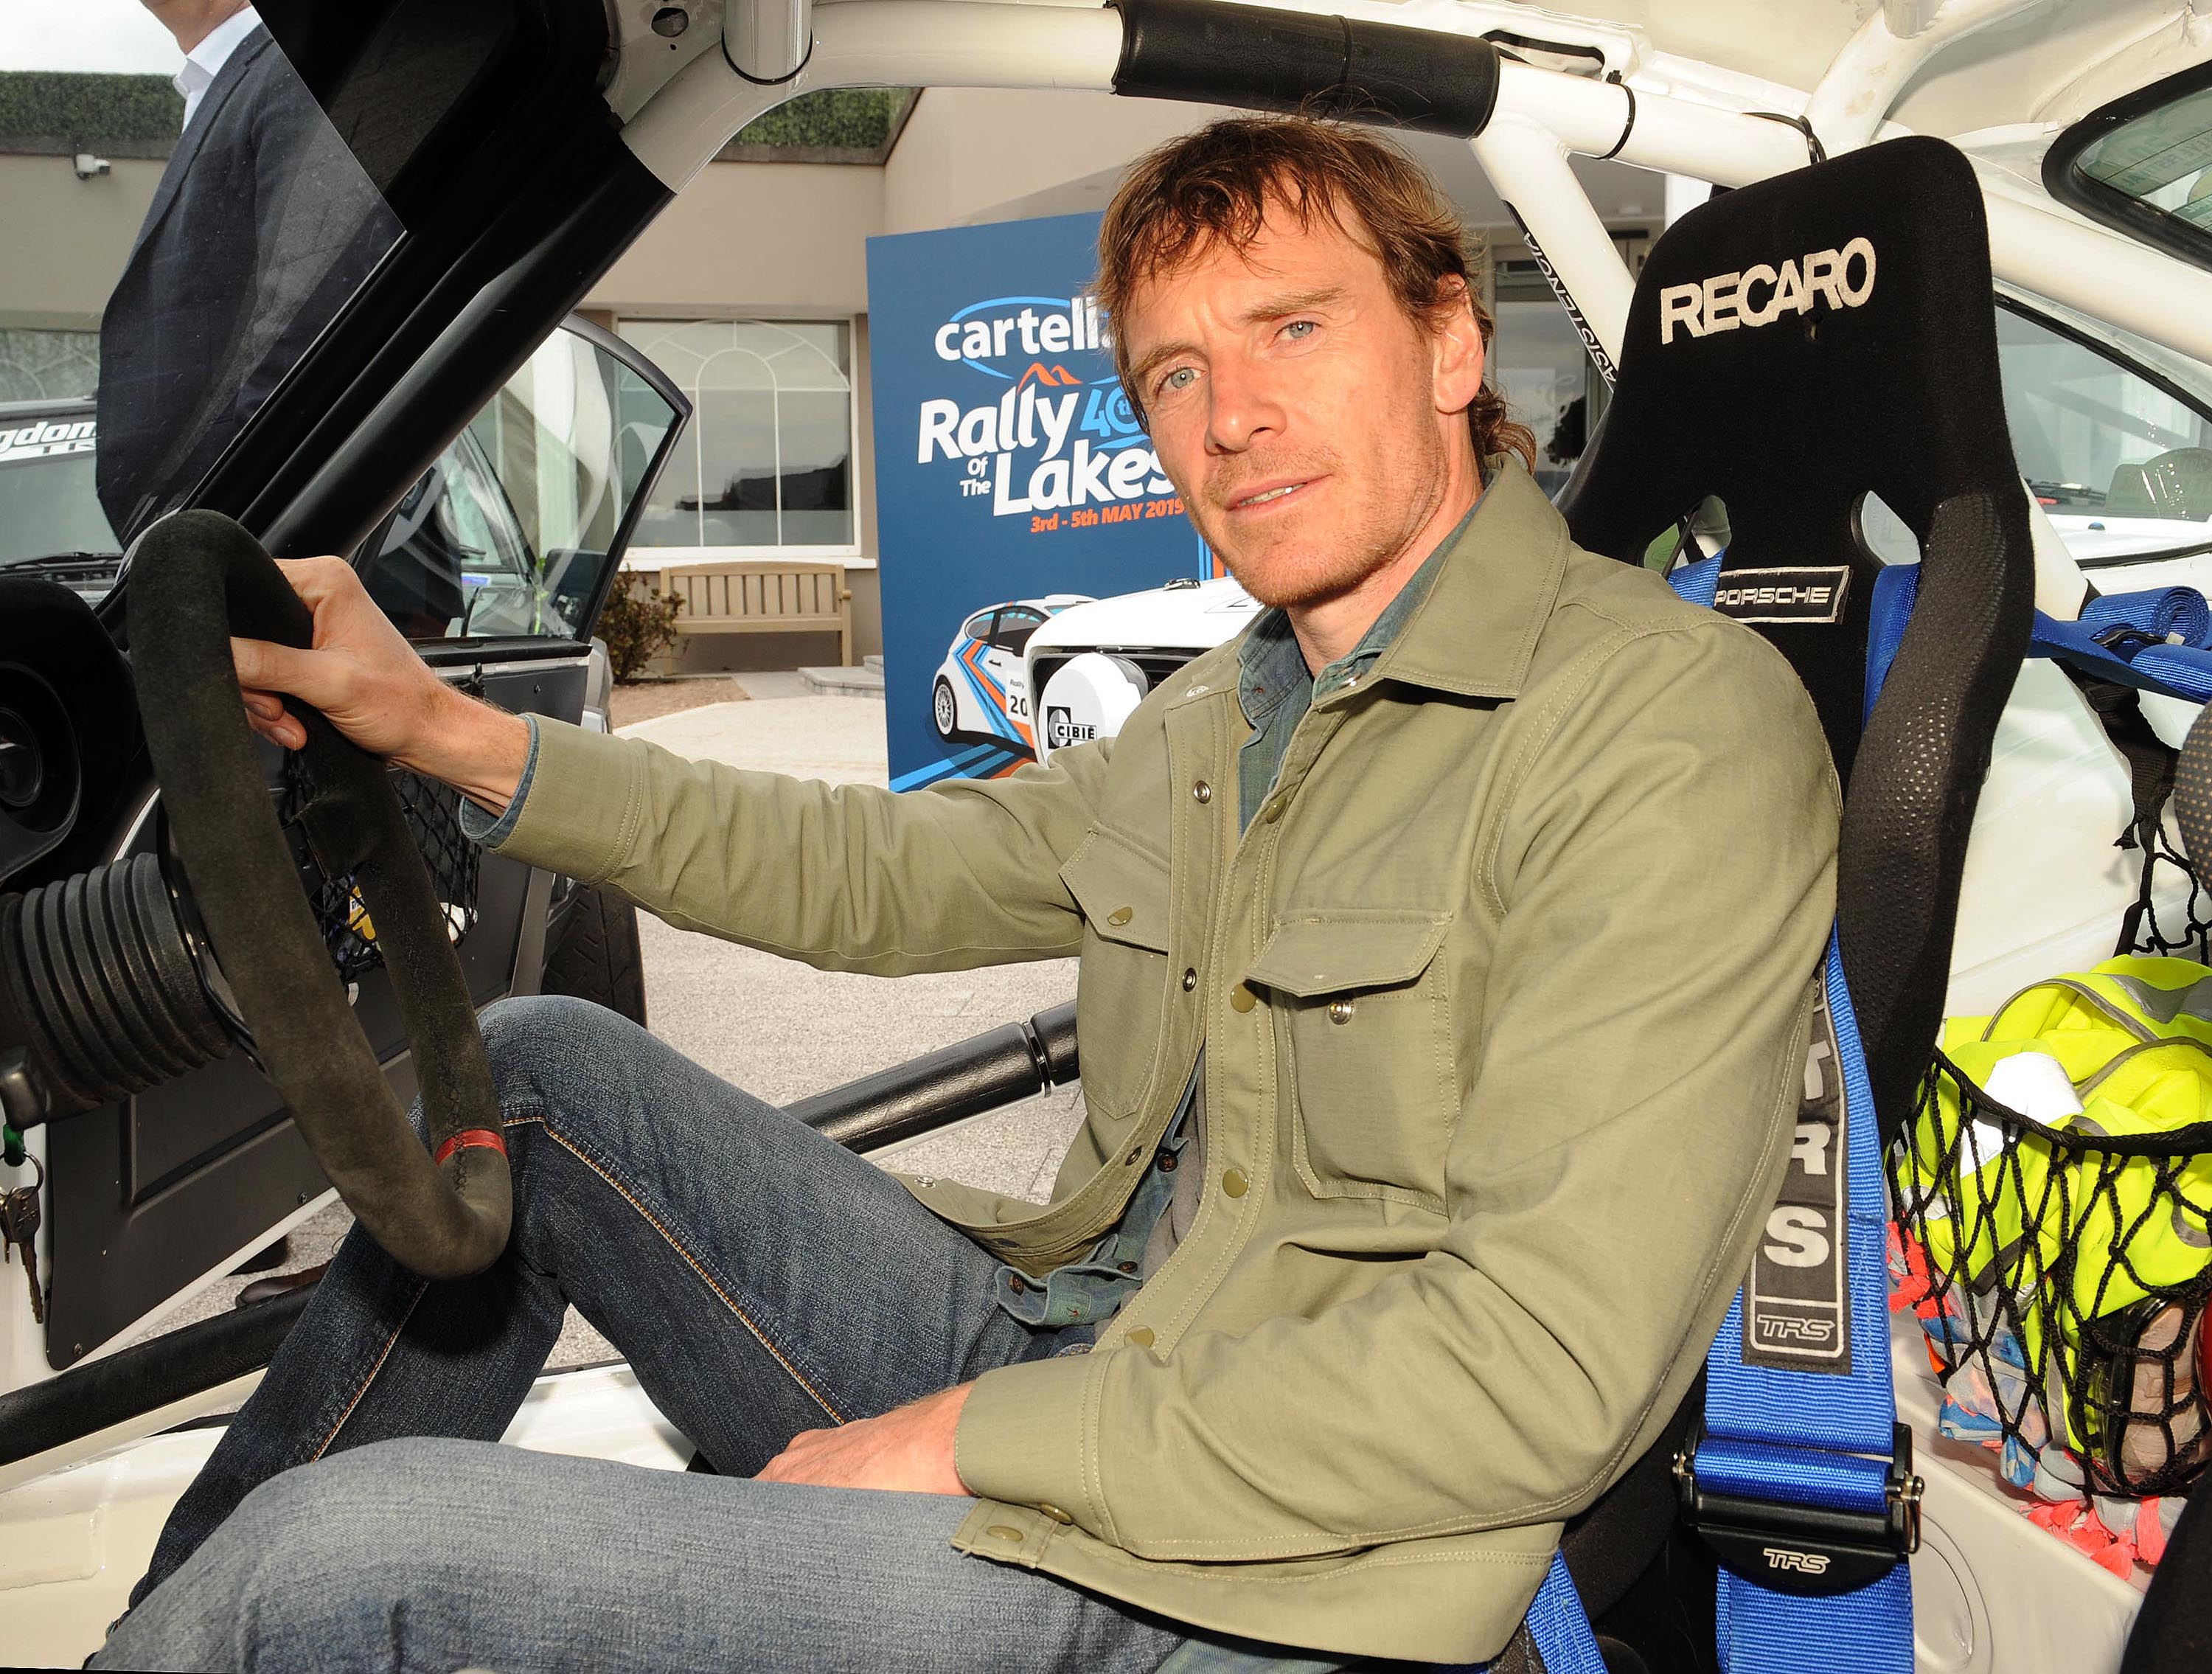 Cartell.ie Rally of the Lakes & Michael Fassbender